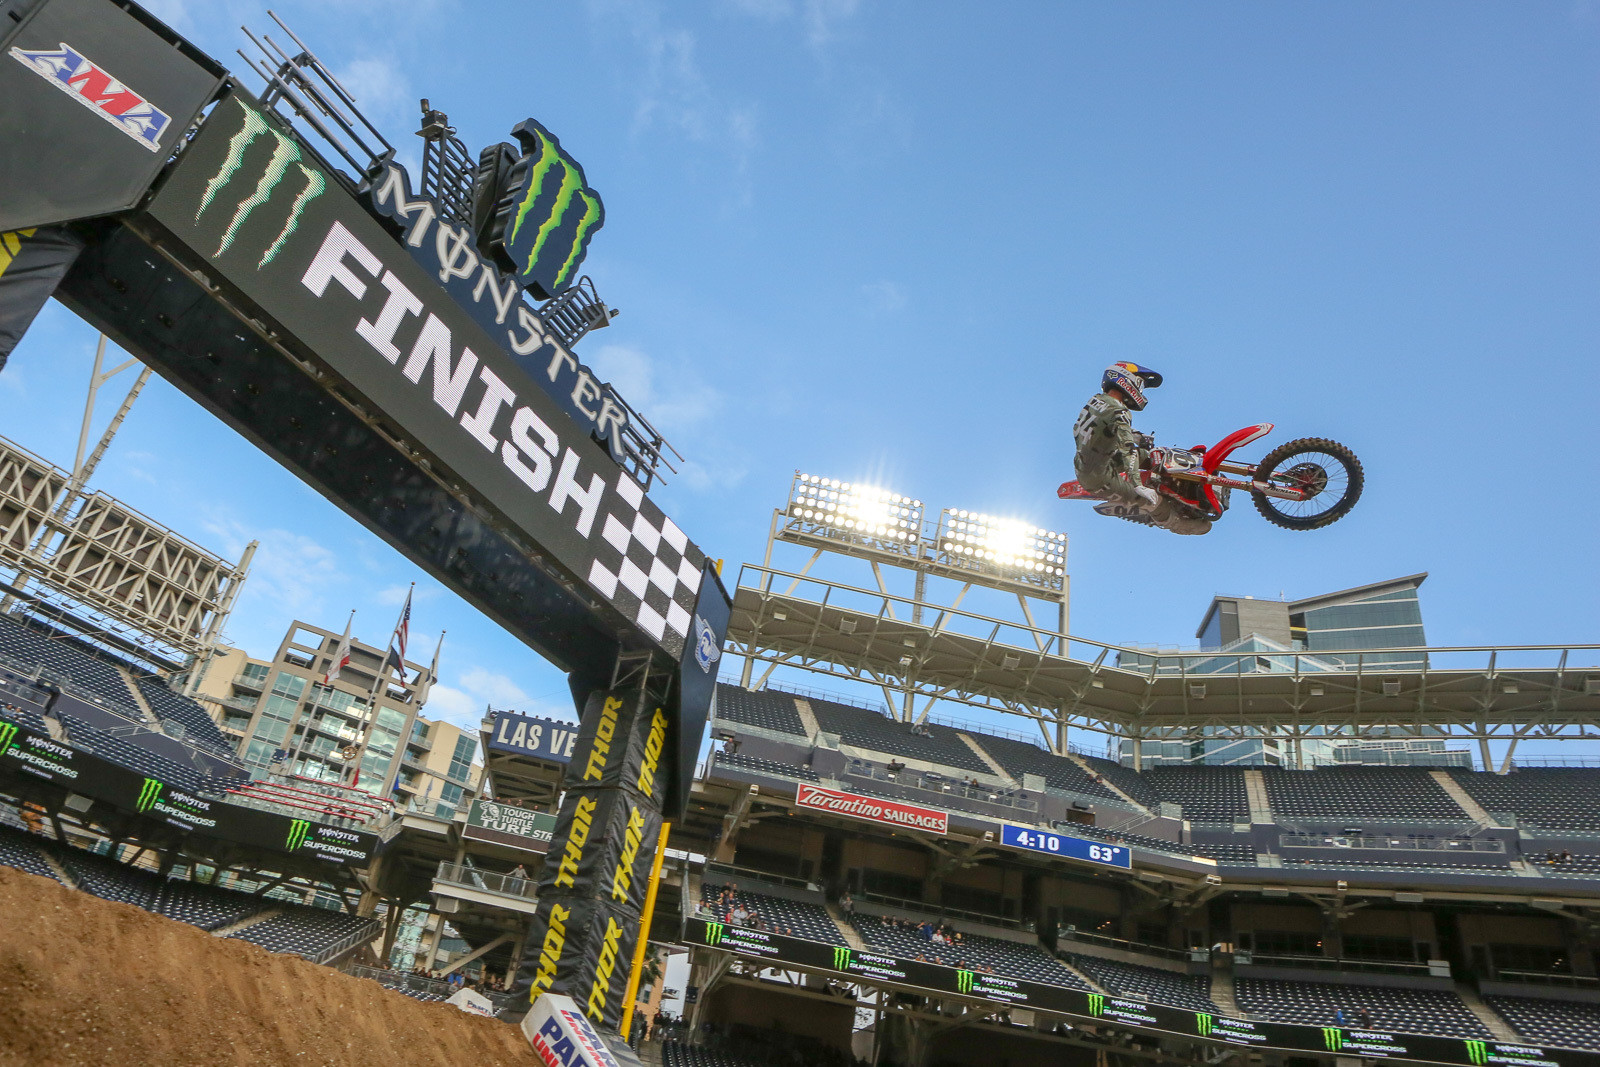 Ken Roczen getting stylish over the finish line jump. He's third on the time sheets.